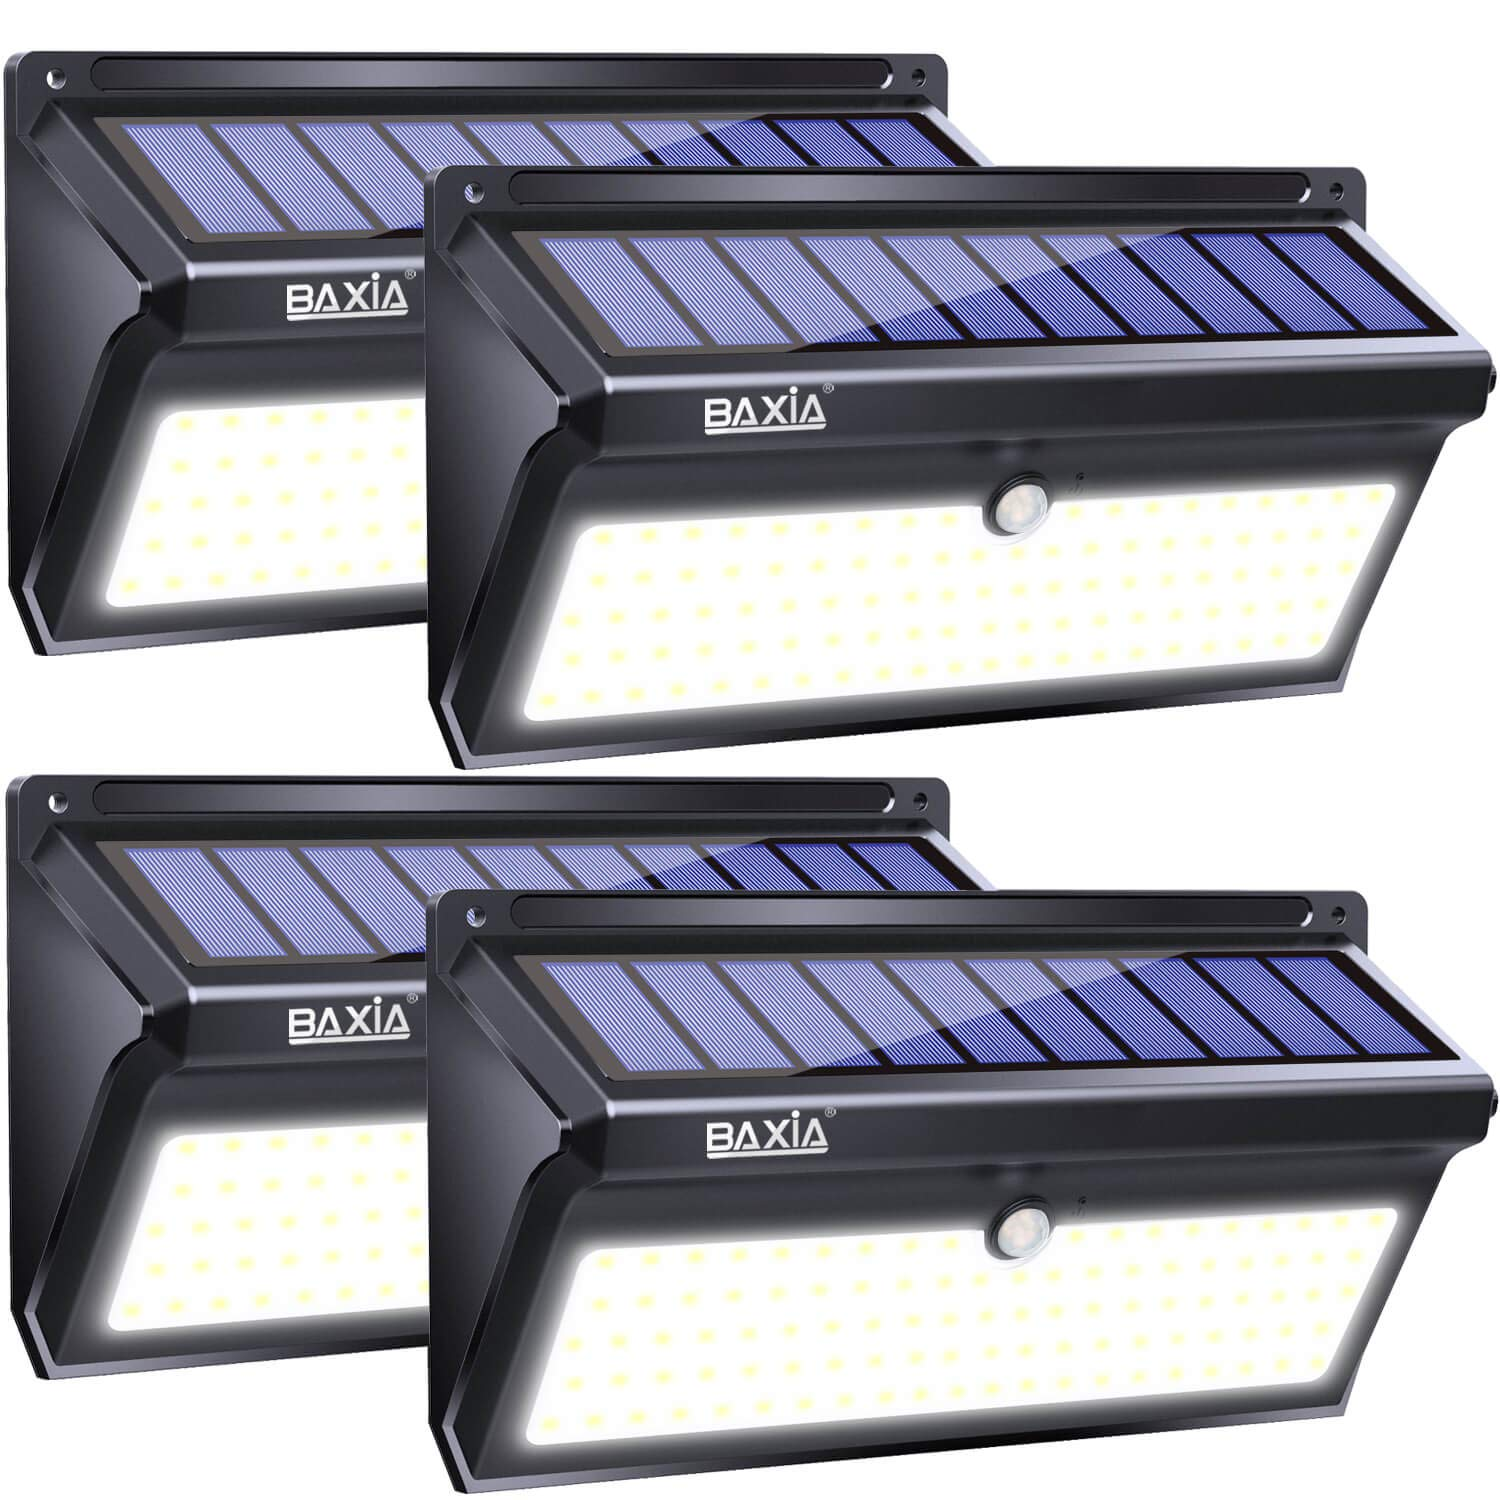 BAXIA TECHNOLOGY Outdoor Wireless 100 LED Solar Motion Sensor Waterproof Security Wall Lighting Outside for Front Door, Backyard, Steps, Garage, Garden (2000LM, 4PACK) by BAXIA TECHNOLOGY (Image #1)